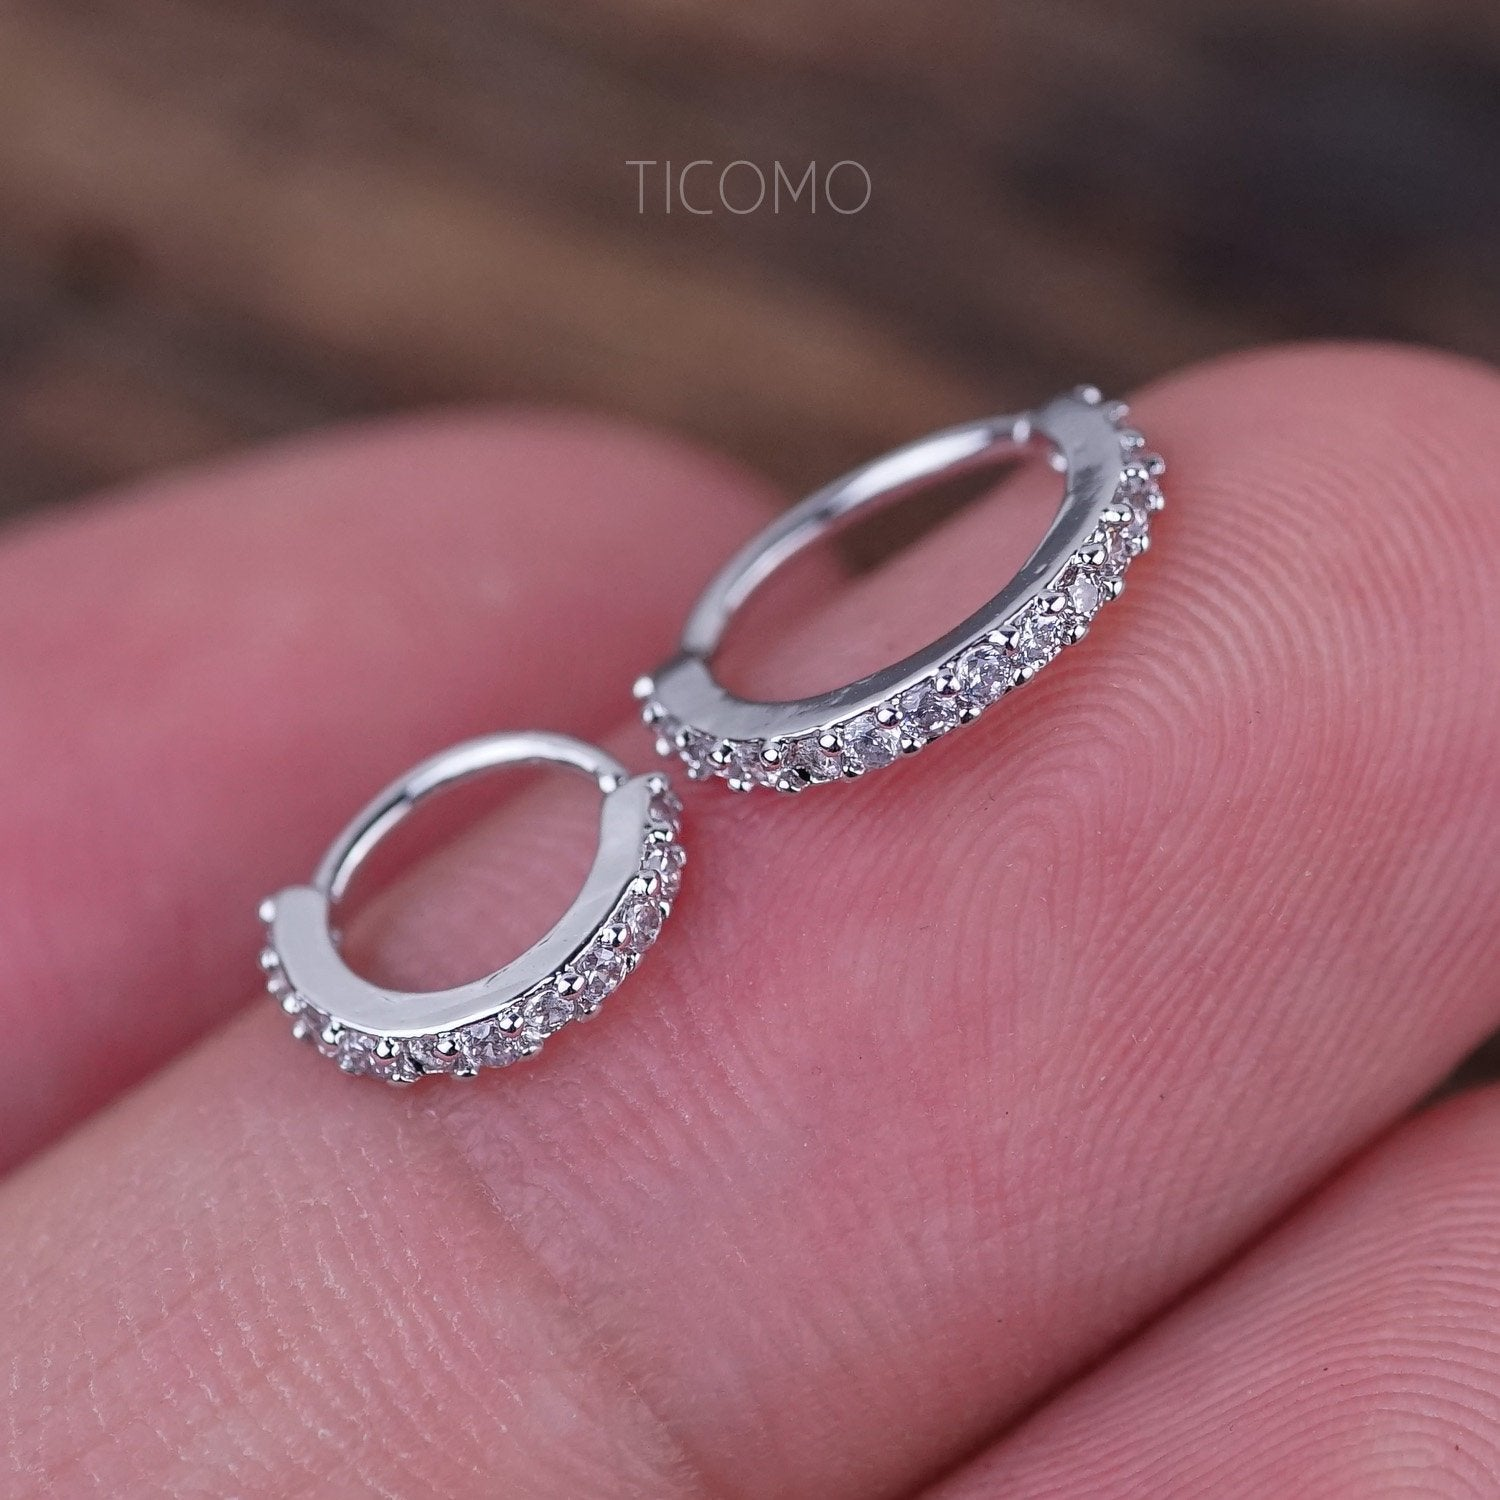 Small Silver Cartilage Hoop Earrings Tiny Helix Hoop Earring Cartilage  Piercing Helix Piercing Hoop Rose Gold Silver Small